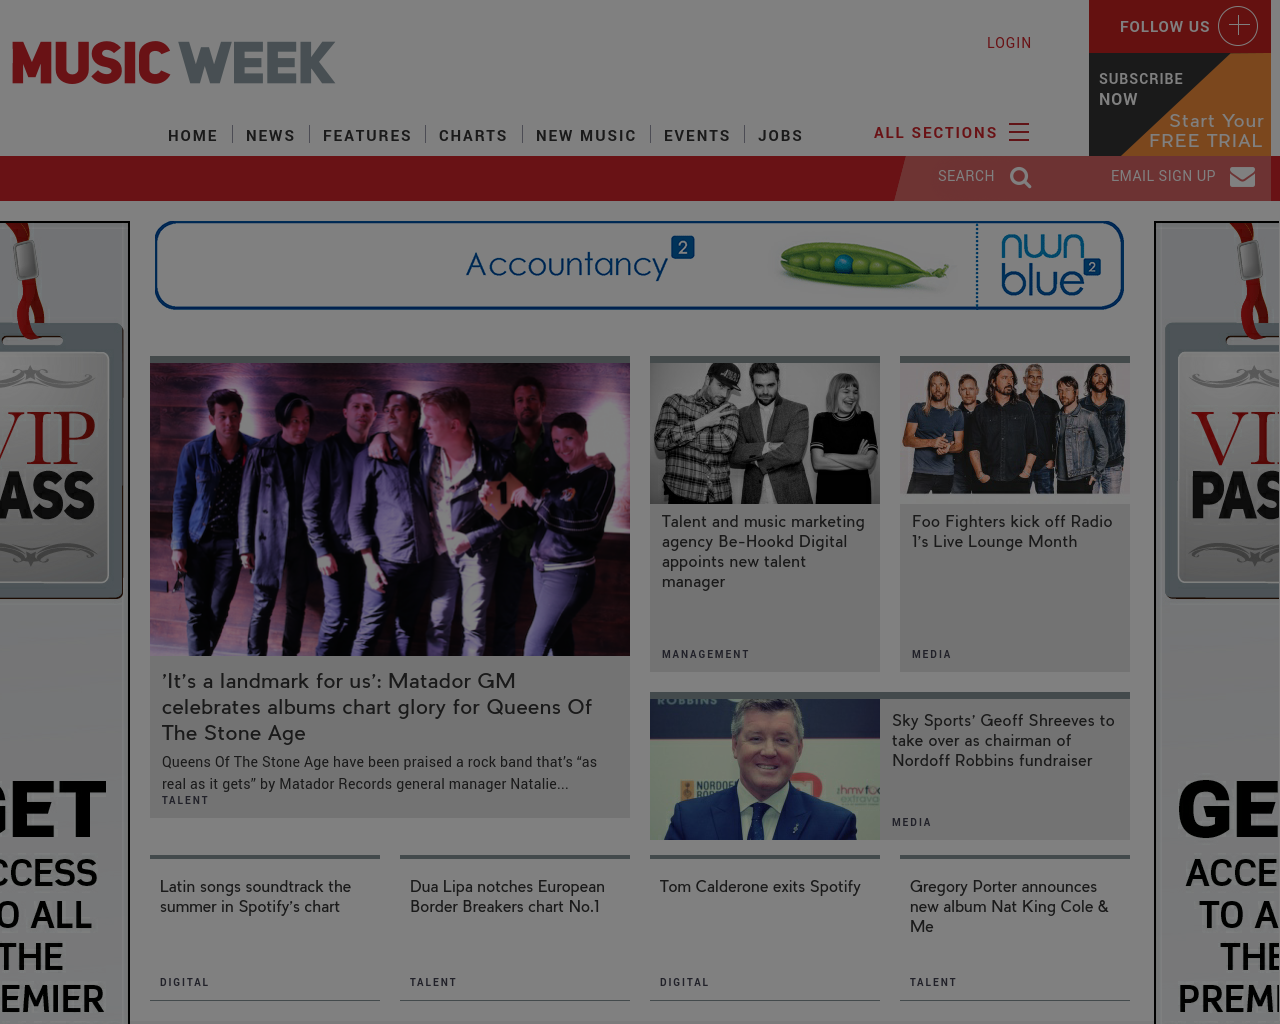 Music-Week-The-Business-of-Music-Advertising-Reviews-Pricing